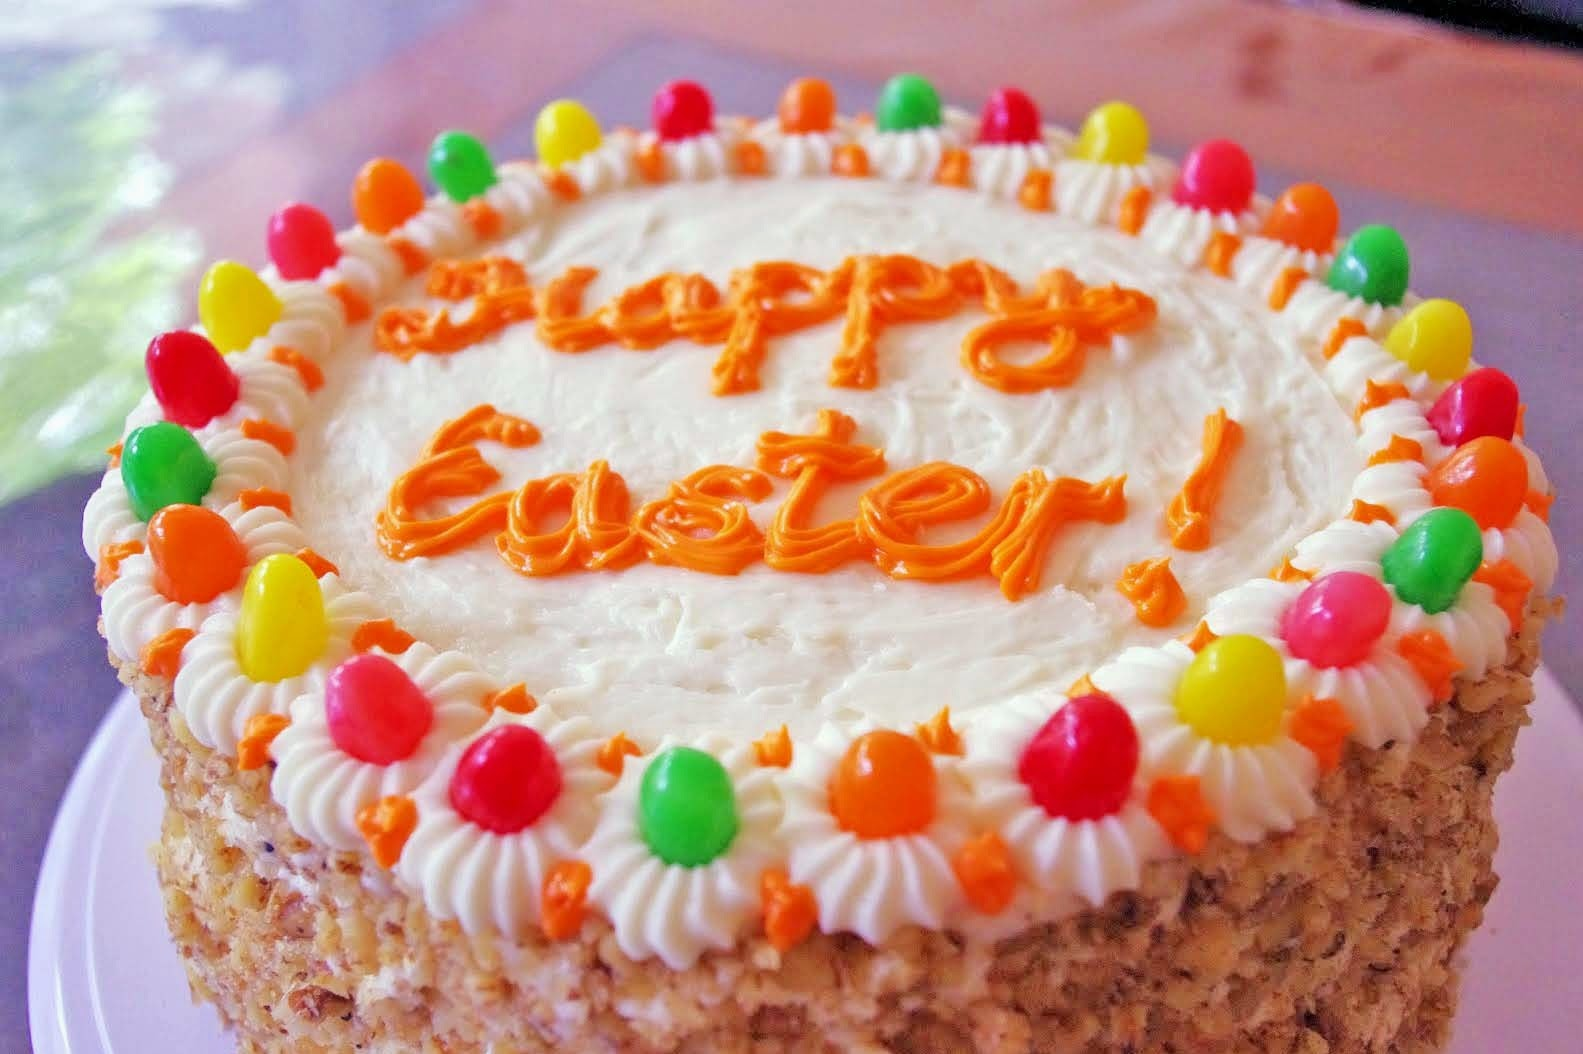 easter day pictures, images, greetings for facebook sharing